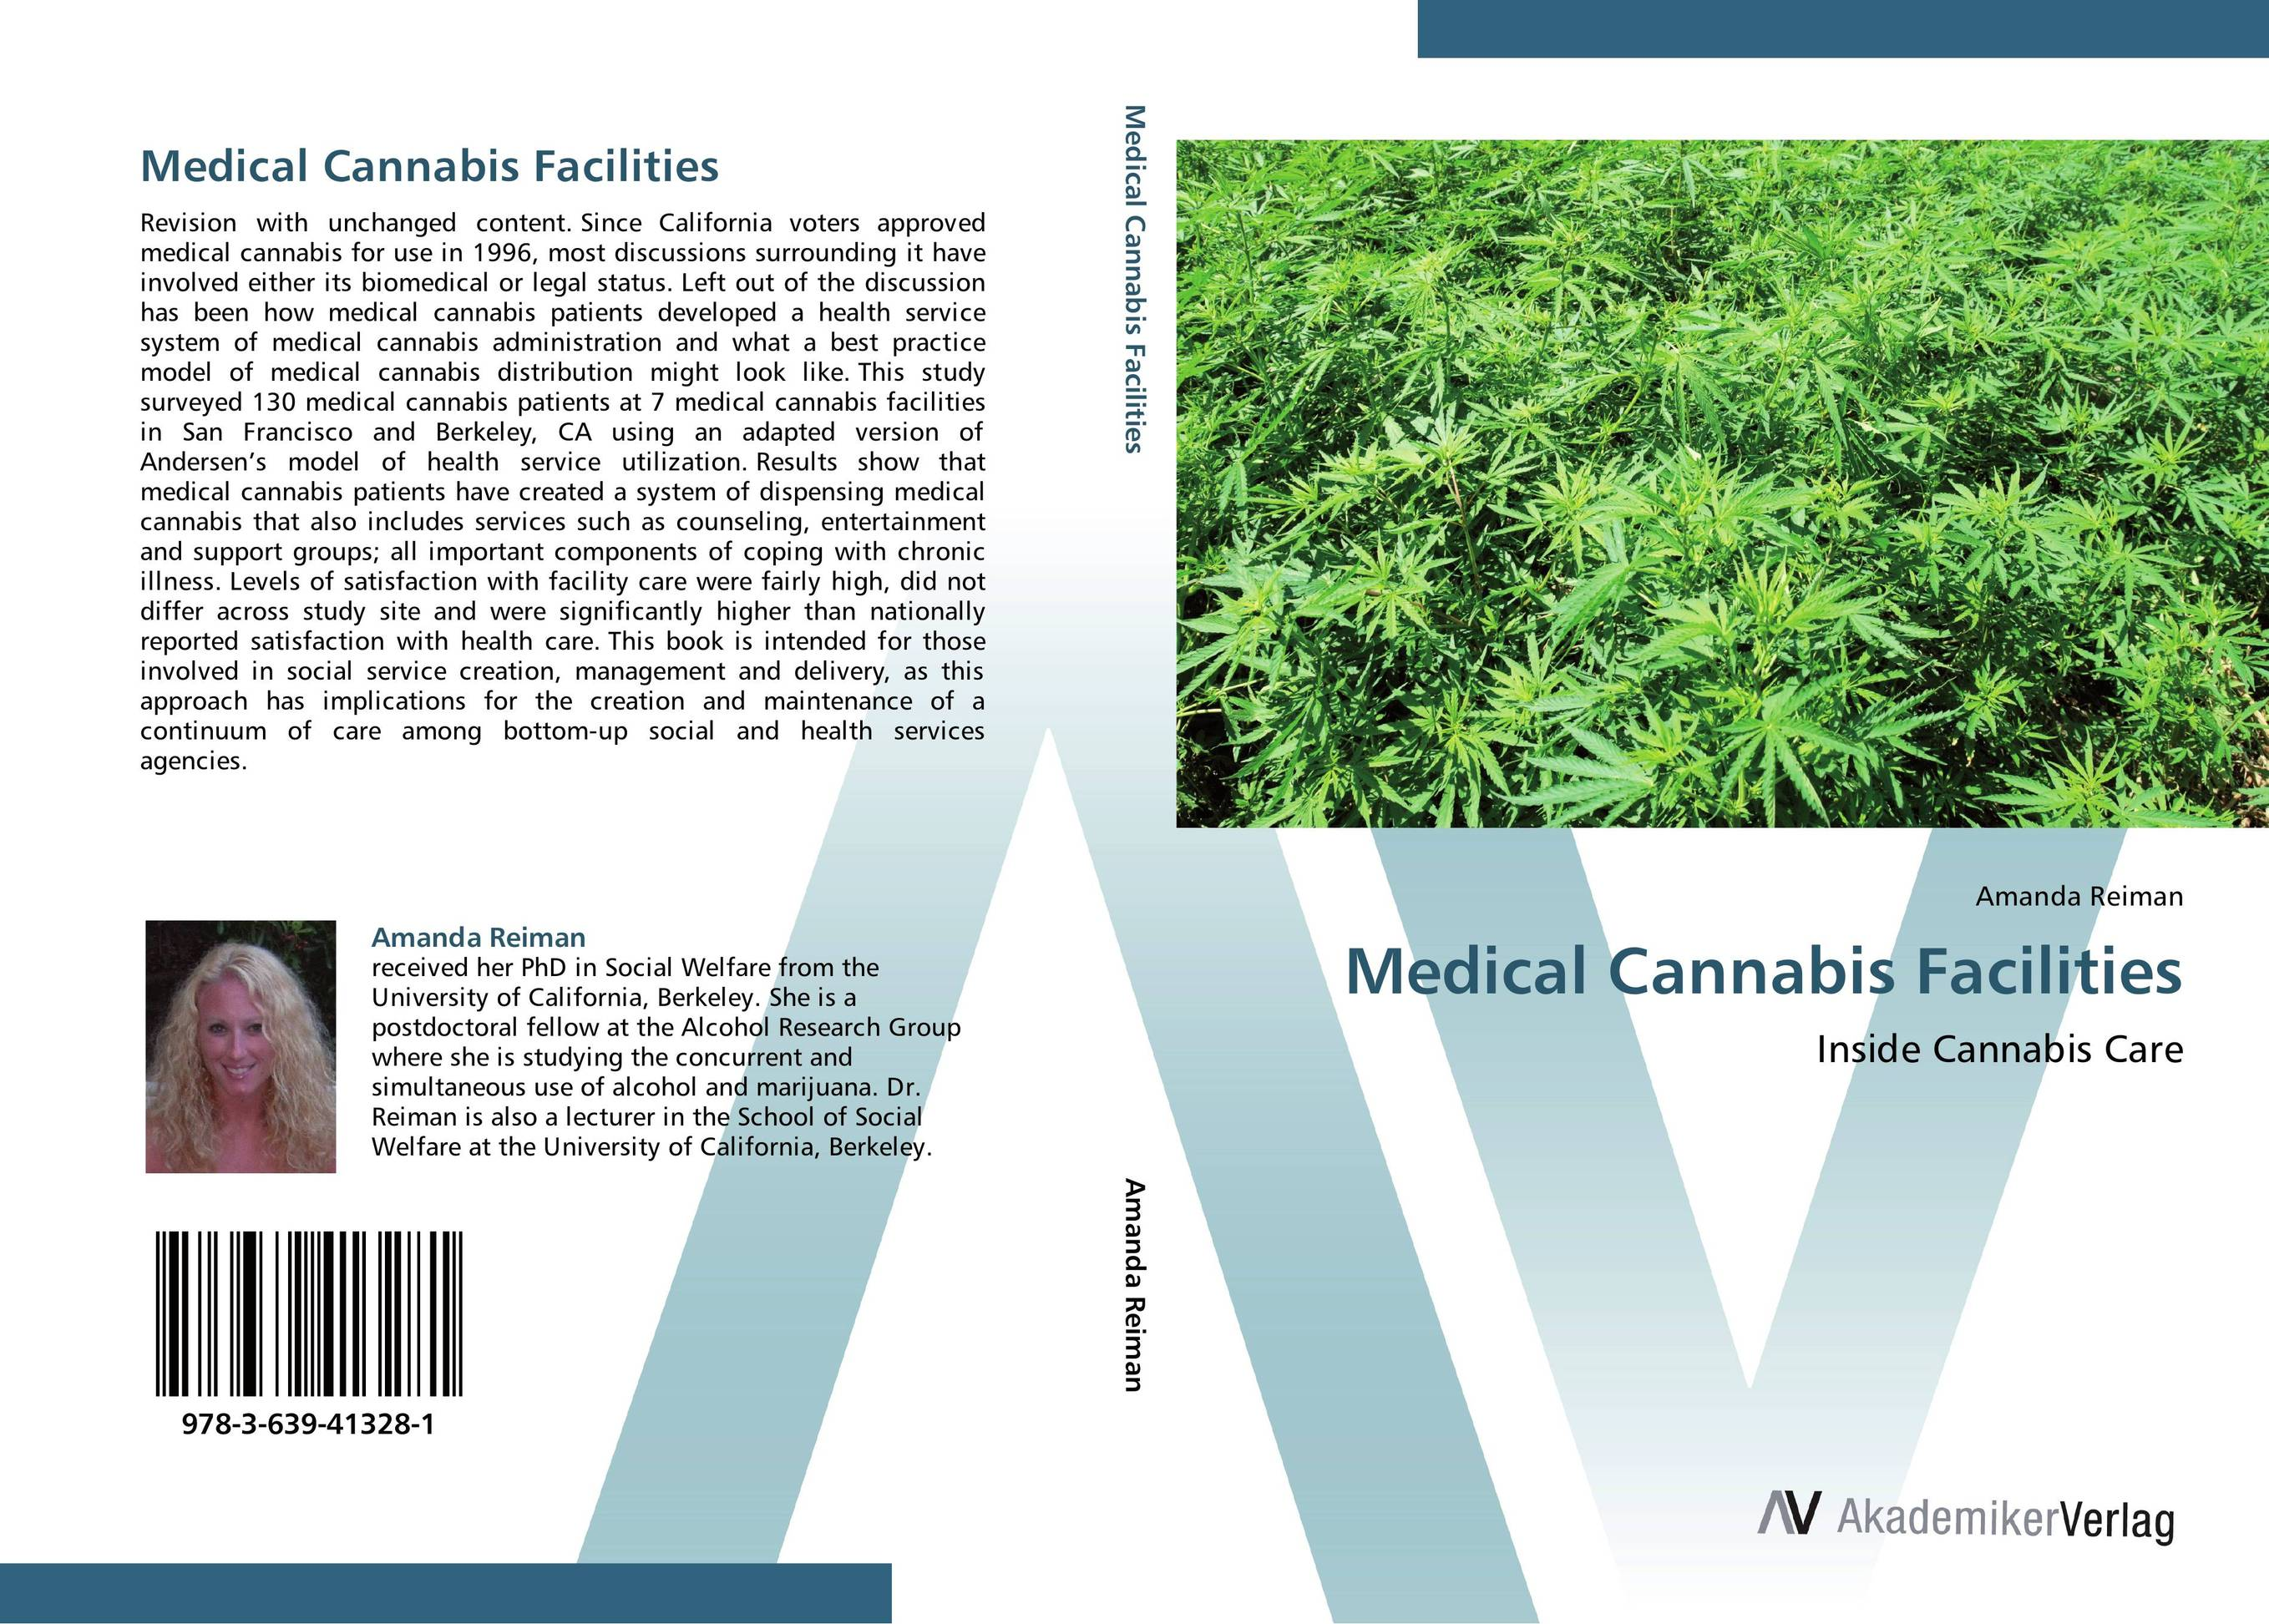 Medical Cannabis Facilities casio sheen she 4800d 7a page 7